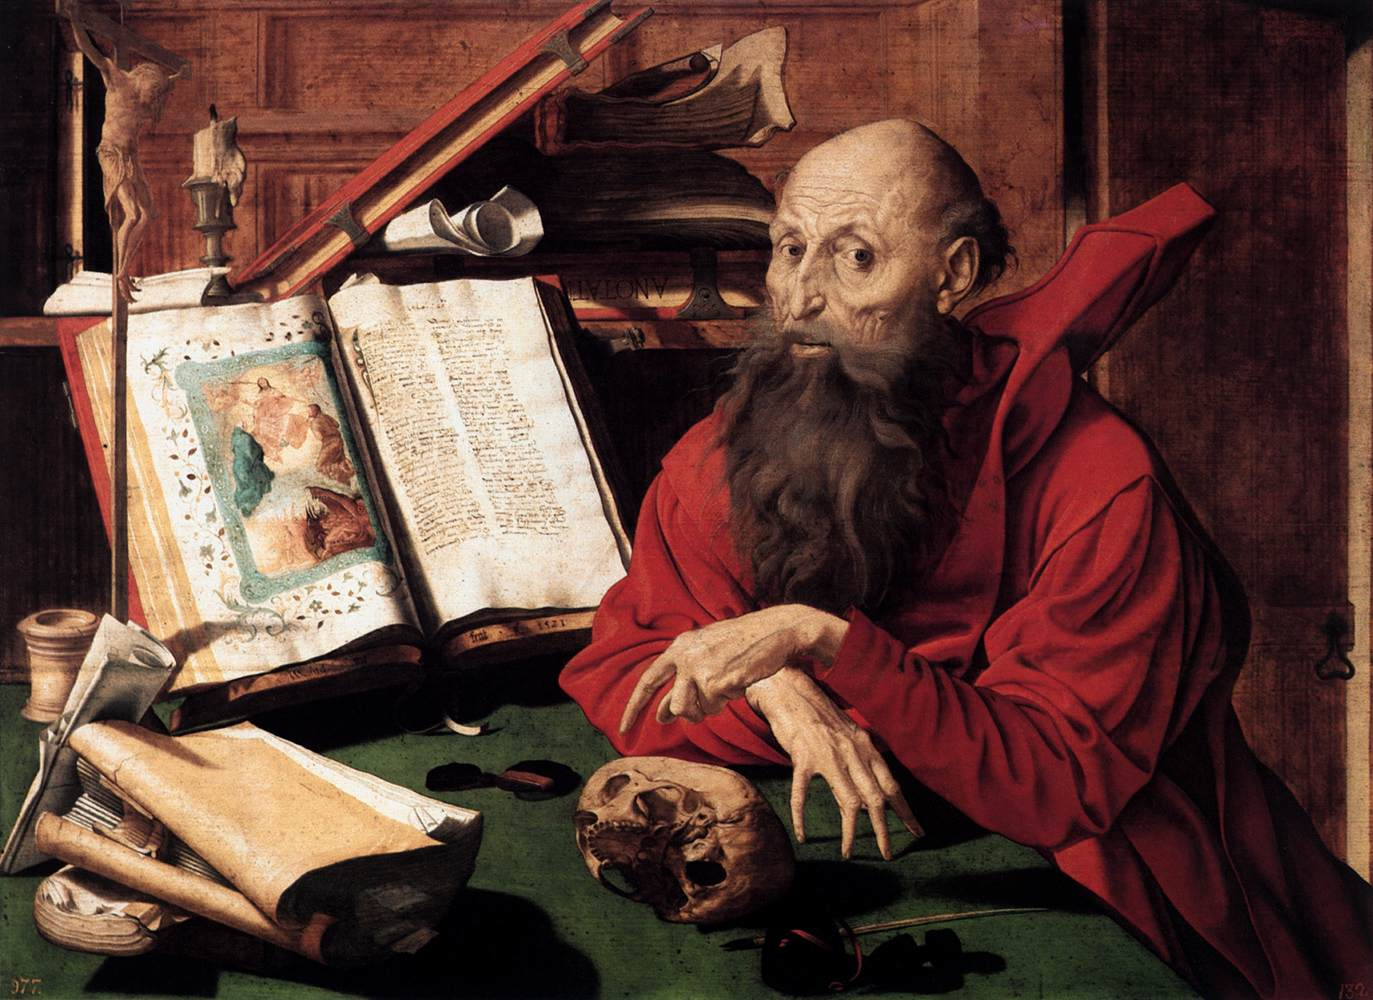 Saint Jerome in his Study / Marinus van Reymerswaele